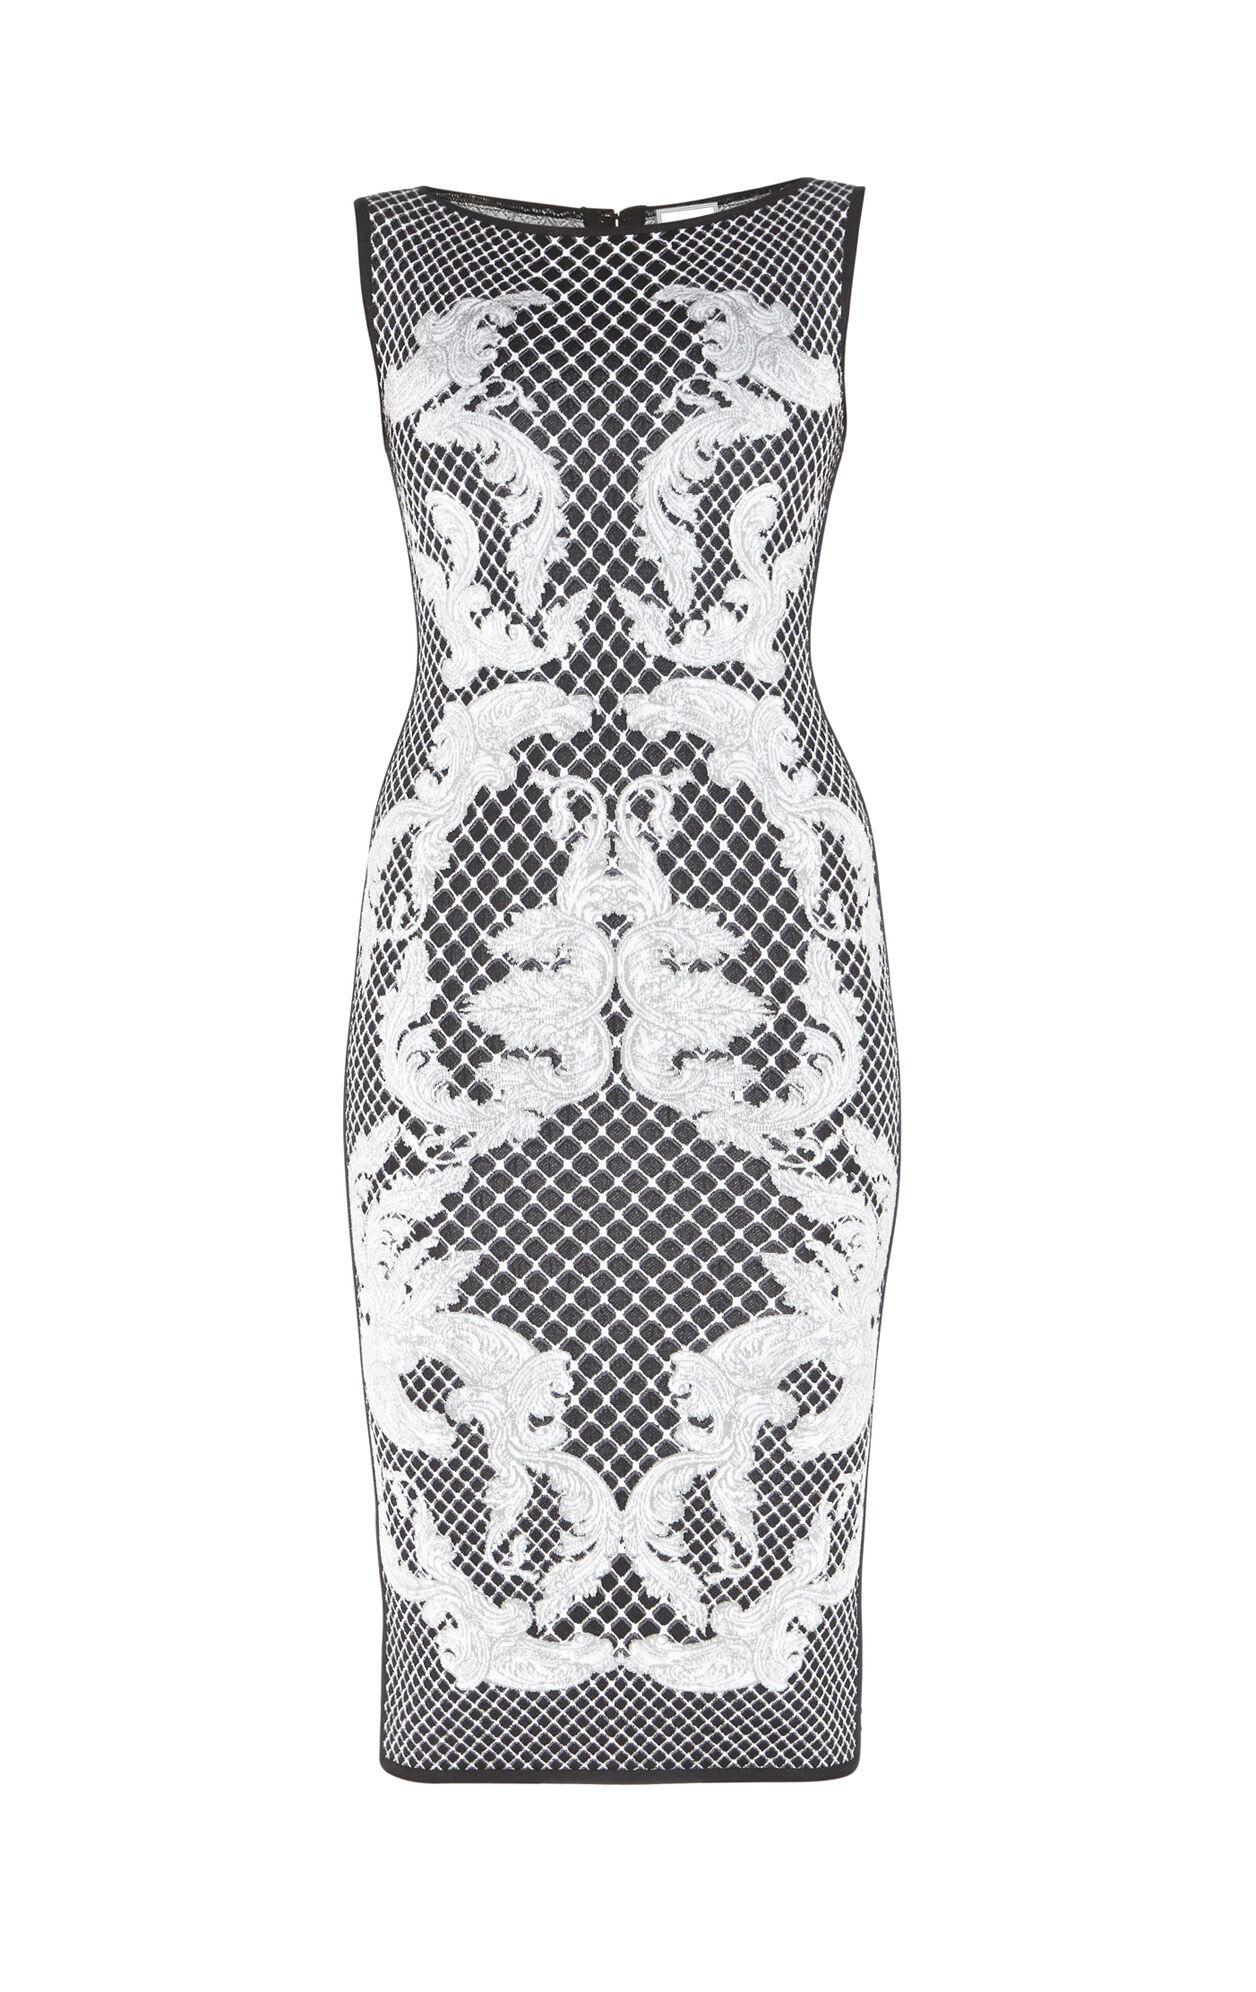 Alexia HL Monogram Crescent Jacquard Dress